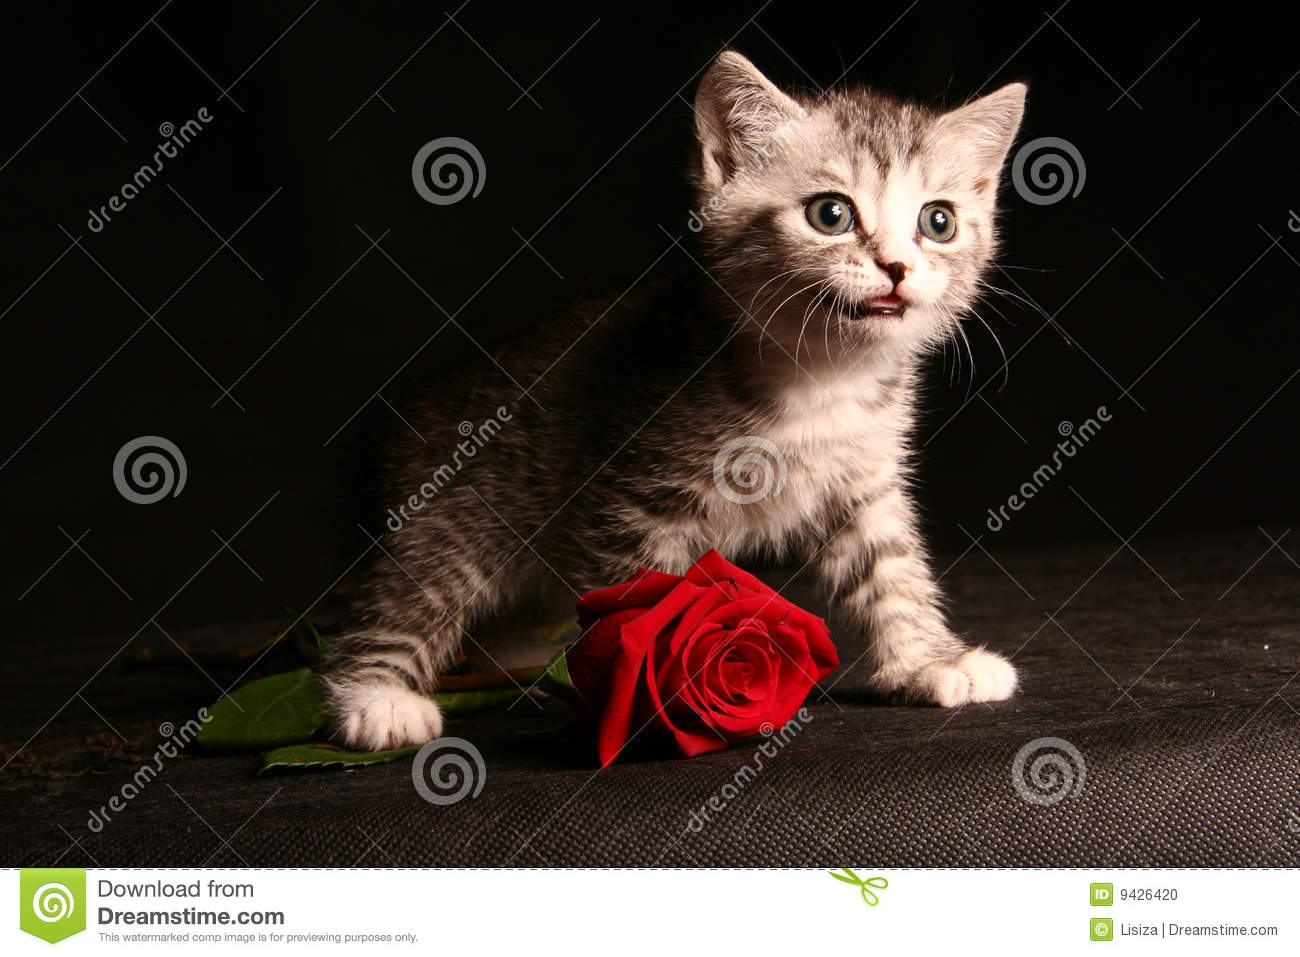 Cat 3d Hd Wallpapers Little Cat With Red Rose Stock Photo Image 9426420